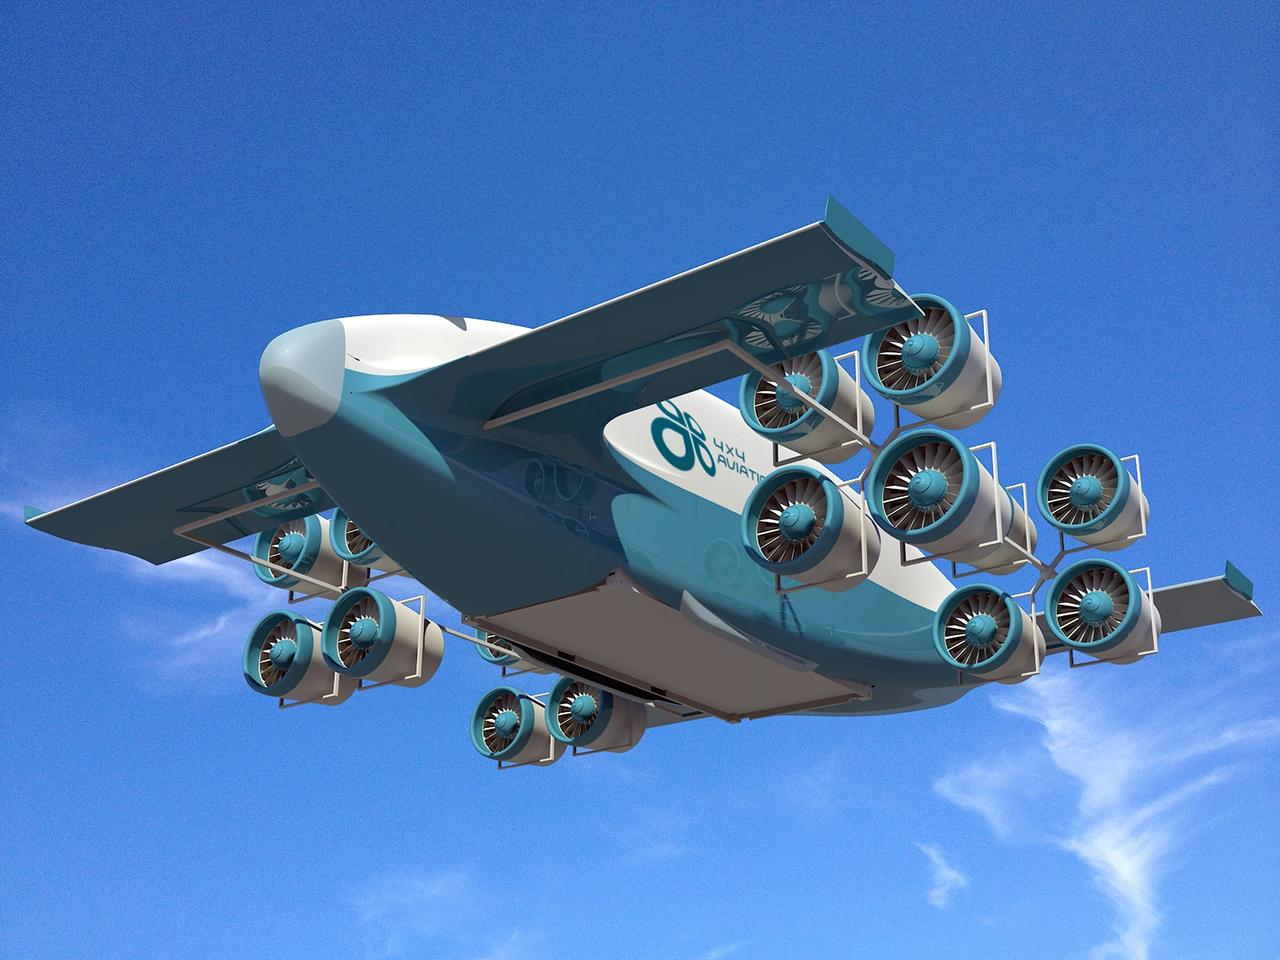 A hybrid VTOL cargo plane concept by 4x4 Aviation is intended to carry truck-sized loads at nearly 200 mph (320 km/h)